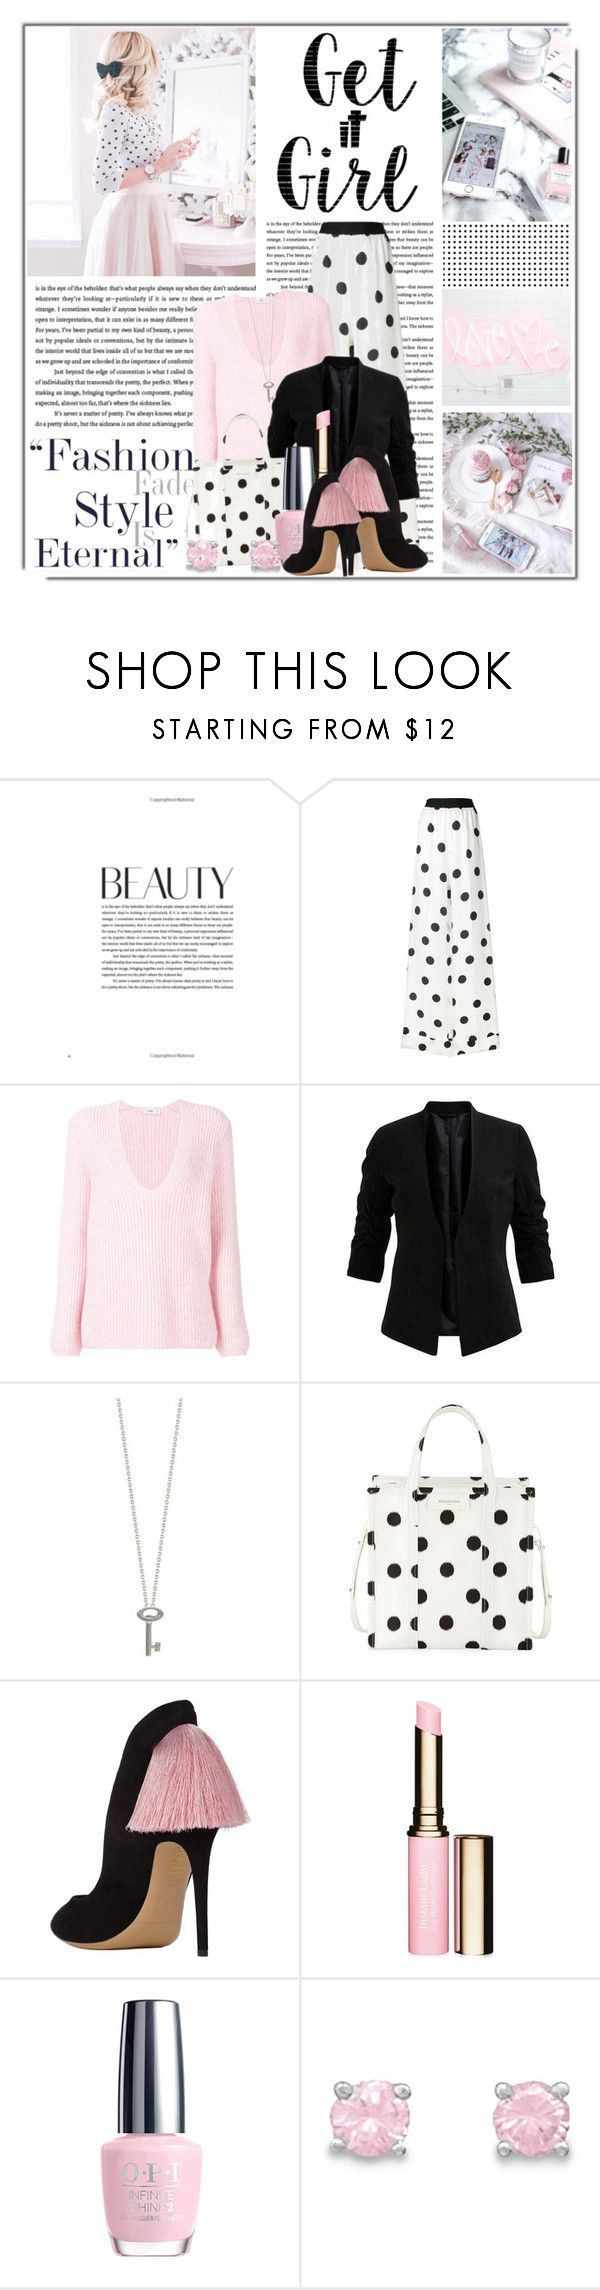 """Get it girl......."" by queenrachietemplateaddict ❤ liked on Polyvore featuring Maison Margiela, Closed, Roberto Coin, Balenciaga, Clarins and Cricut"